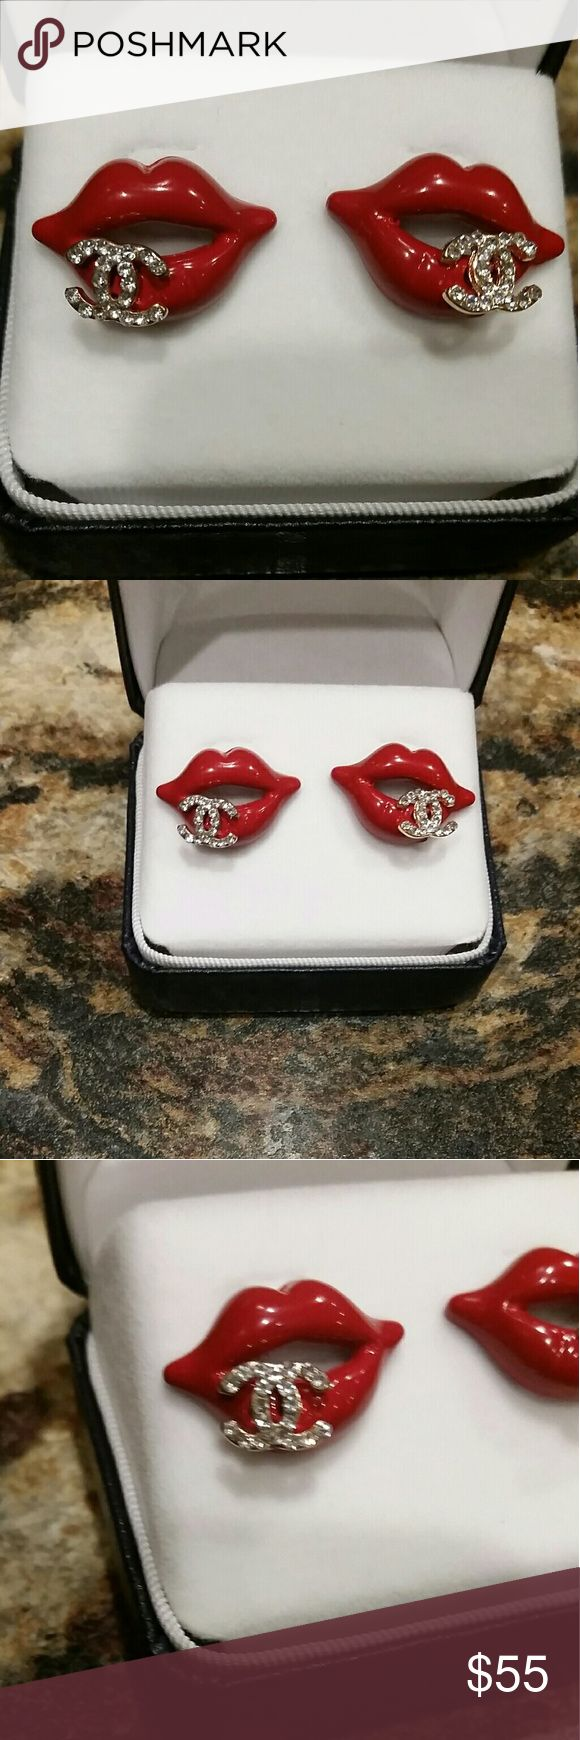 HOT LIPS! ! OMG! HAVE YOU EVER SEEN SOMETHING SO ADORABLE!  Red hot lips with super shiny crystal rhinestone CC INSPIRED EARRINGS!  Excellent quality. Jeweler made. chanel  Jewelry